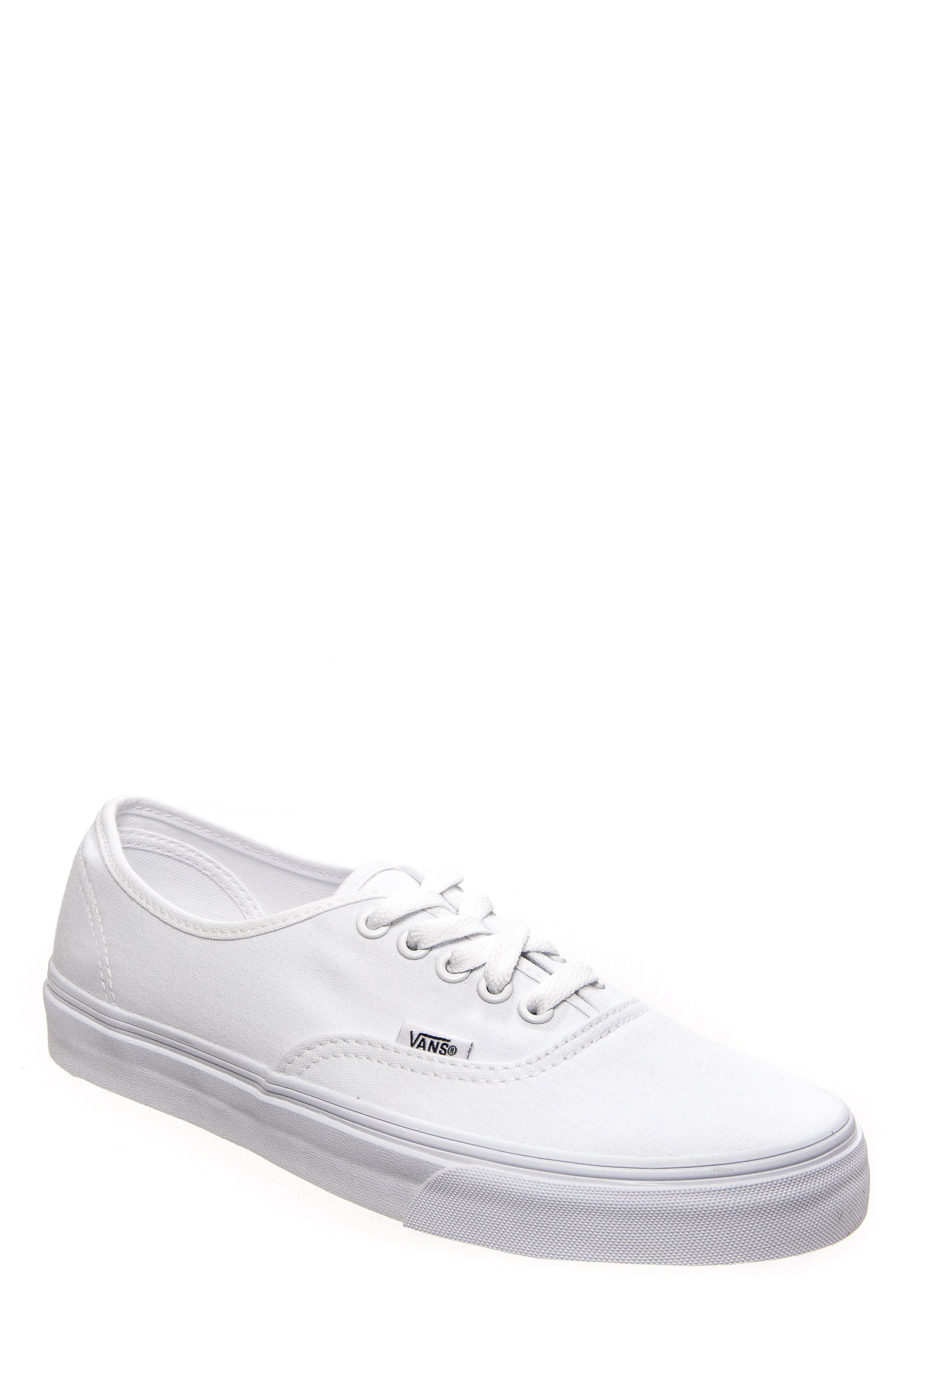 Vans Unisex Authentic Classic Sneakers - True White